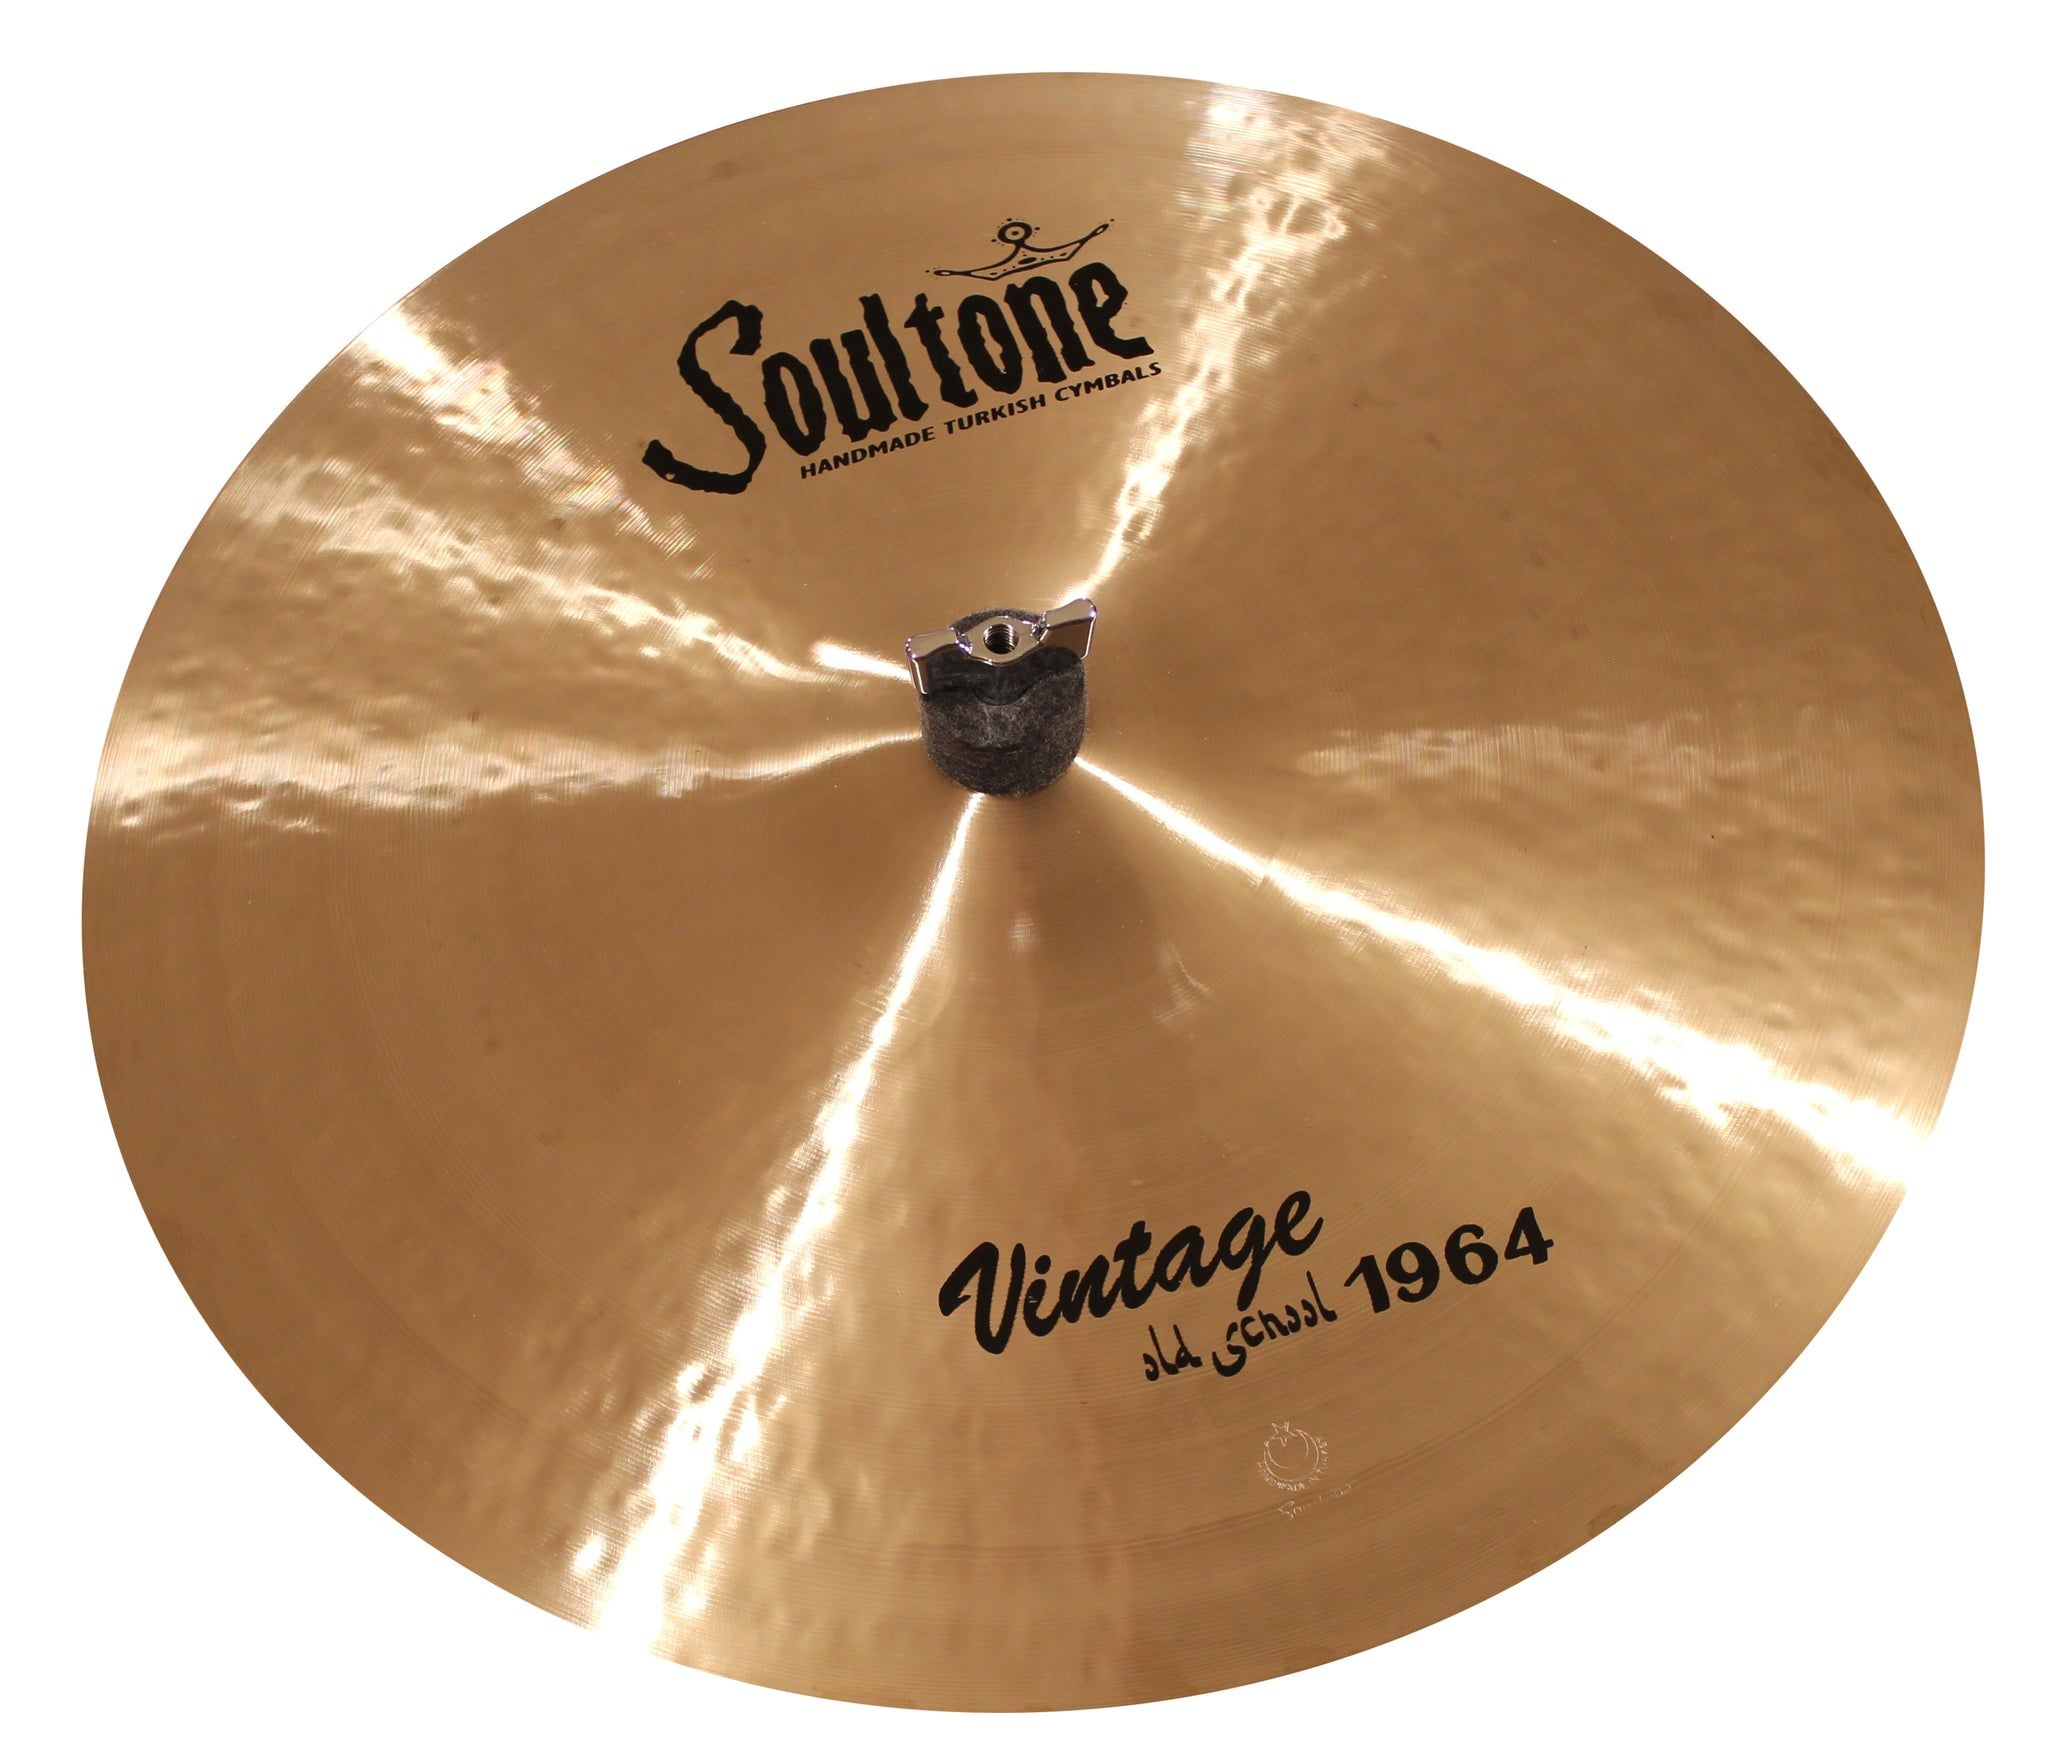 Soultone Cymbals Vintage Old School 1964 Crash